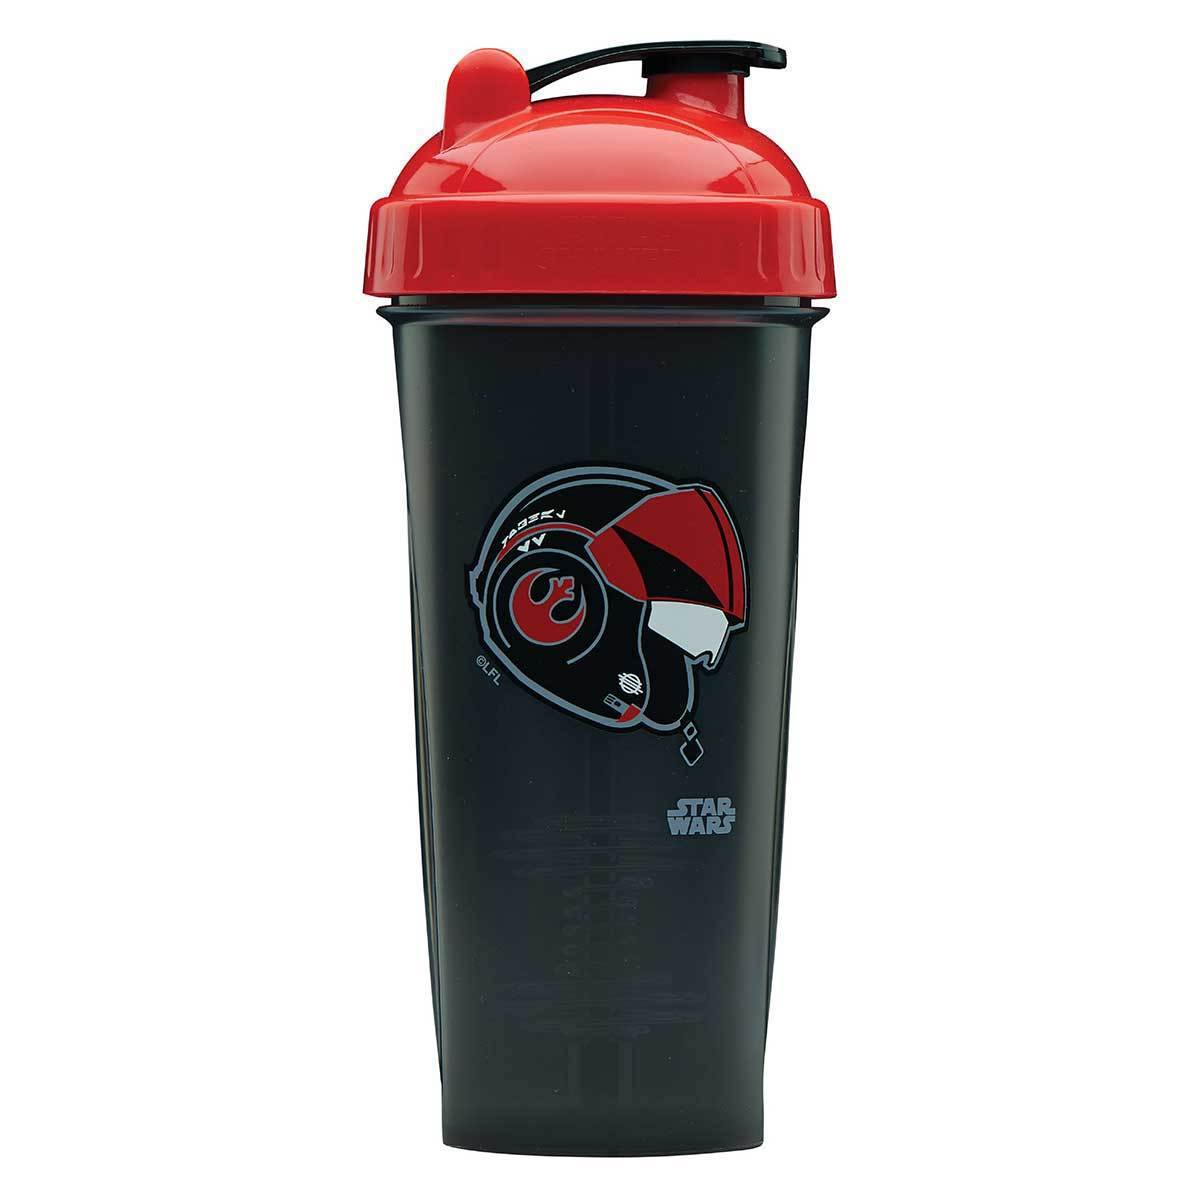 Star Wars Poe Shaker Bottle 28oz Fitness Accessories and Apparel PerfectShaker  (1059339206699)